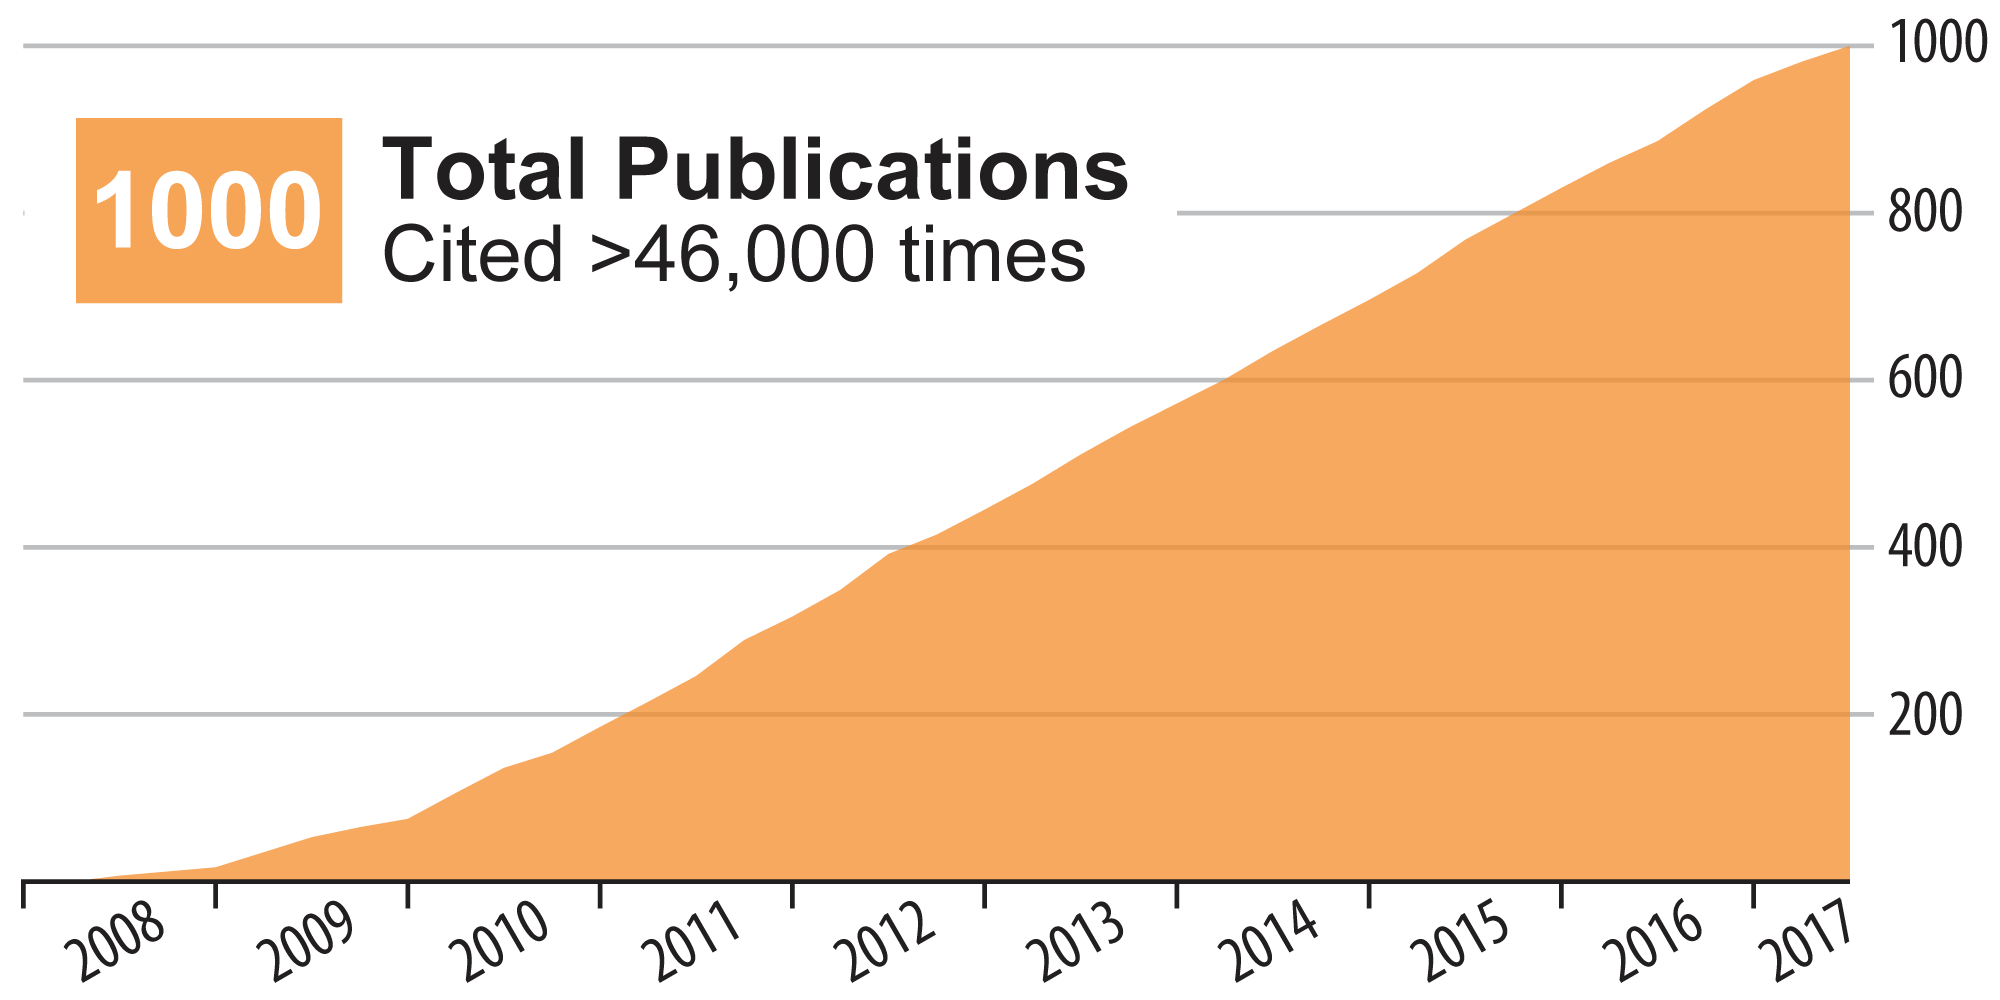 Graph of the Great Lakes Bioenergy Research Center's 1000 publications